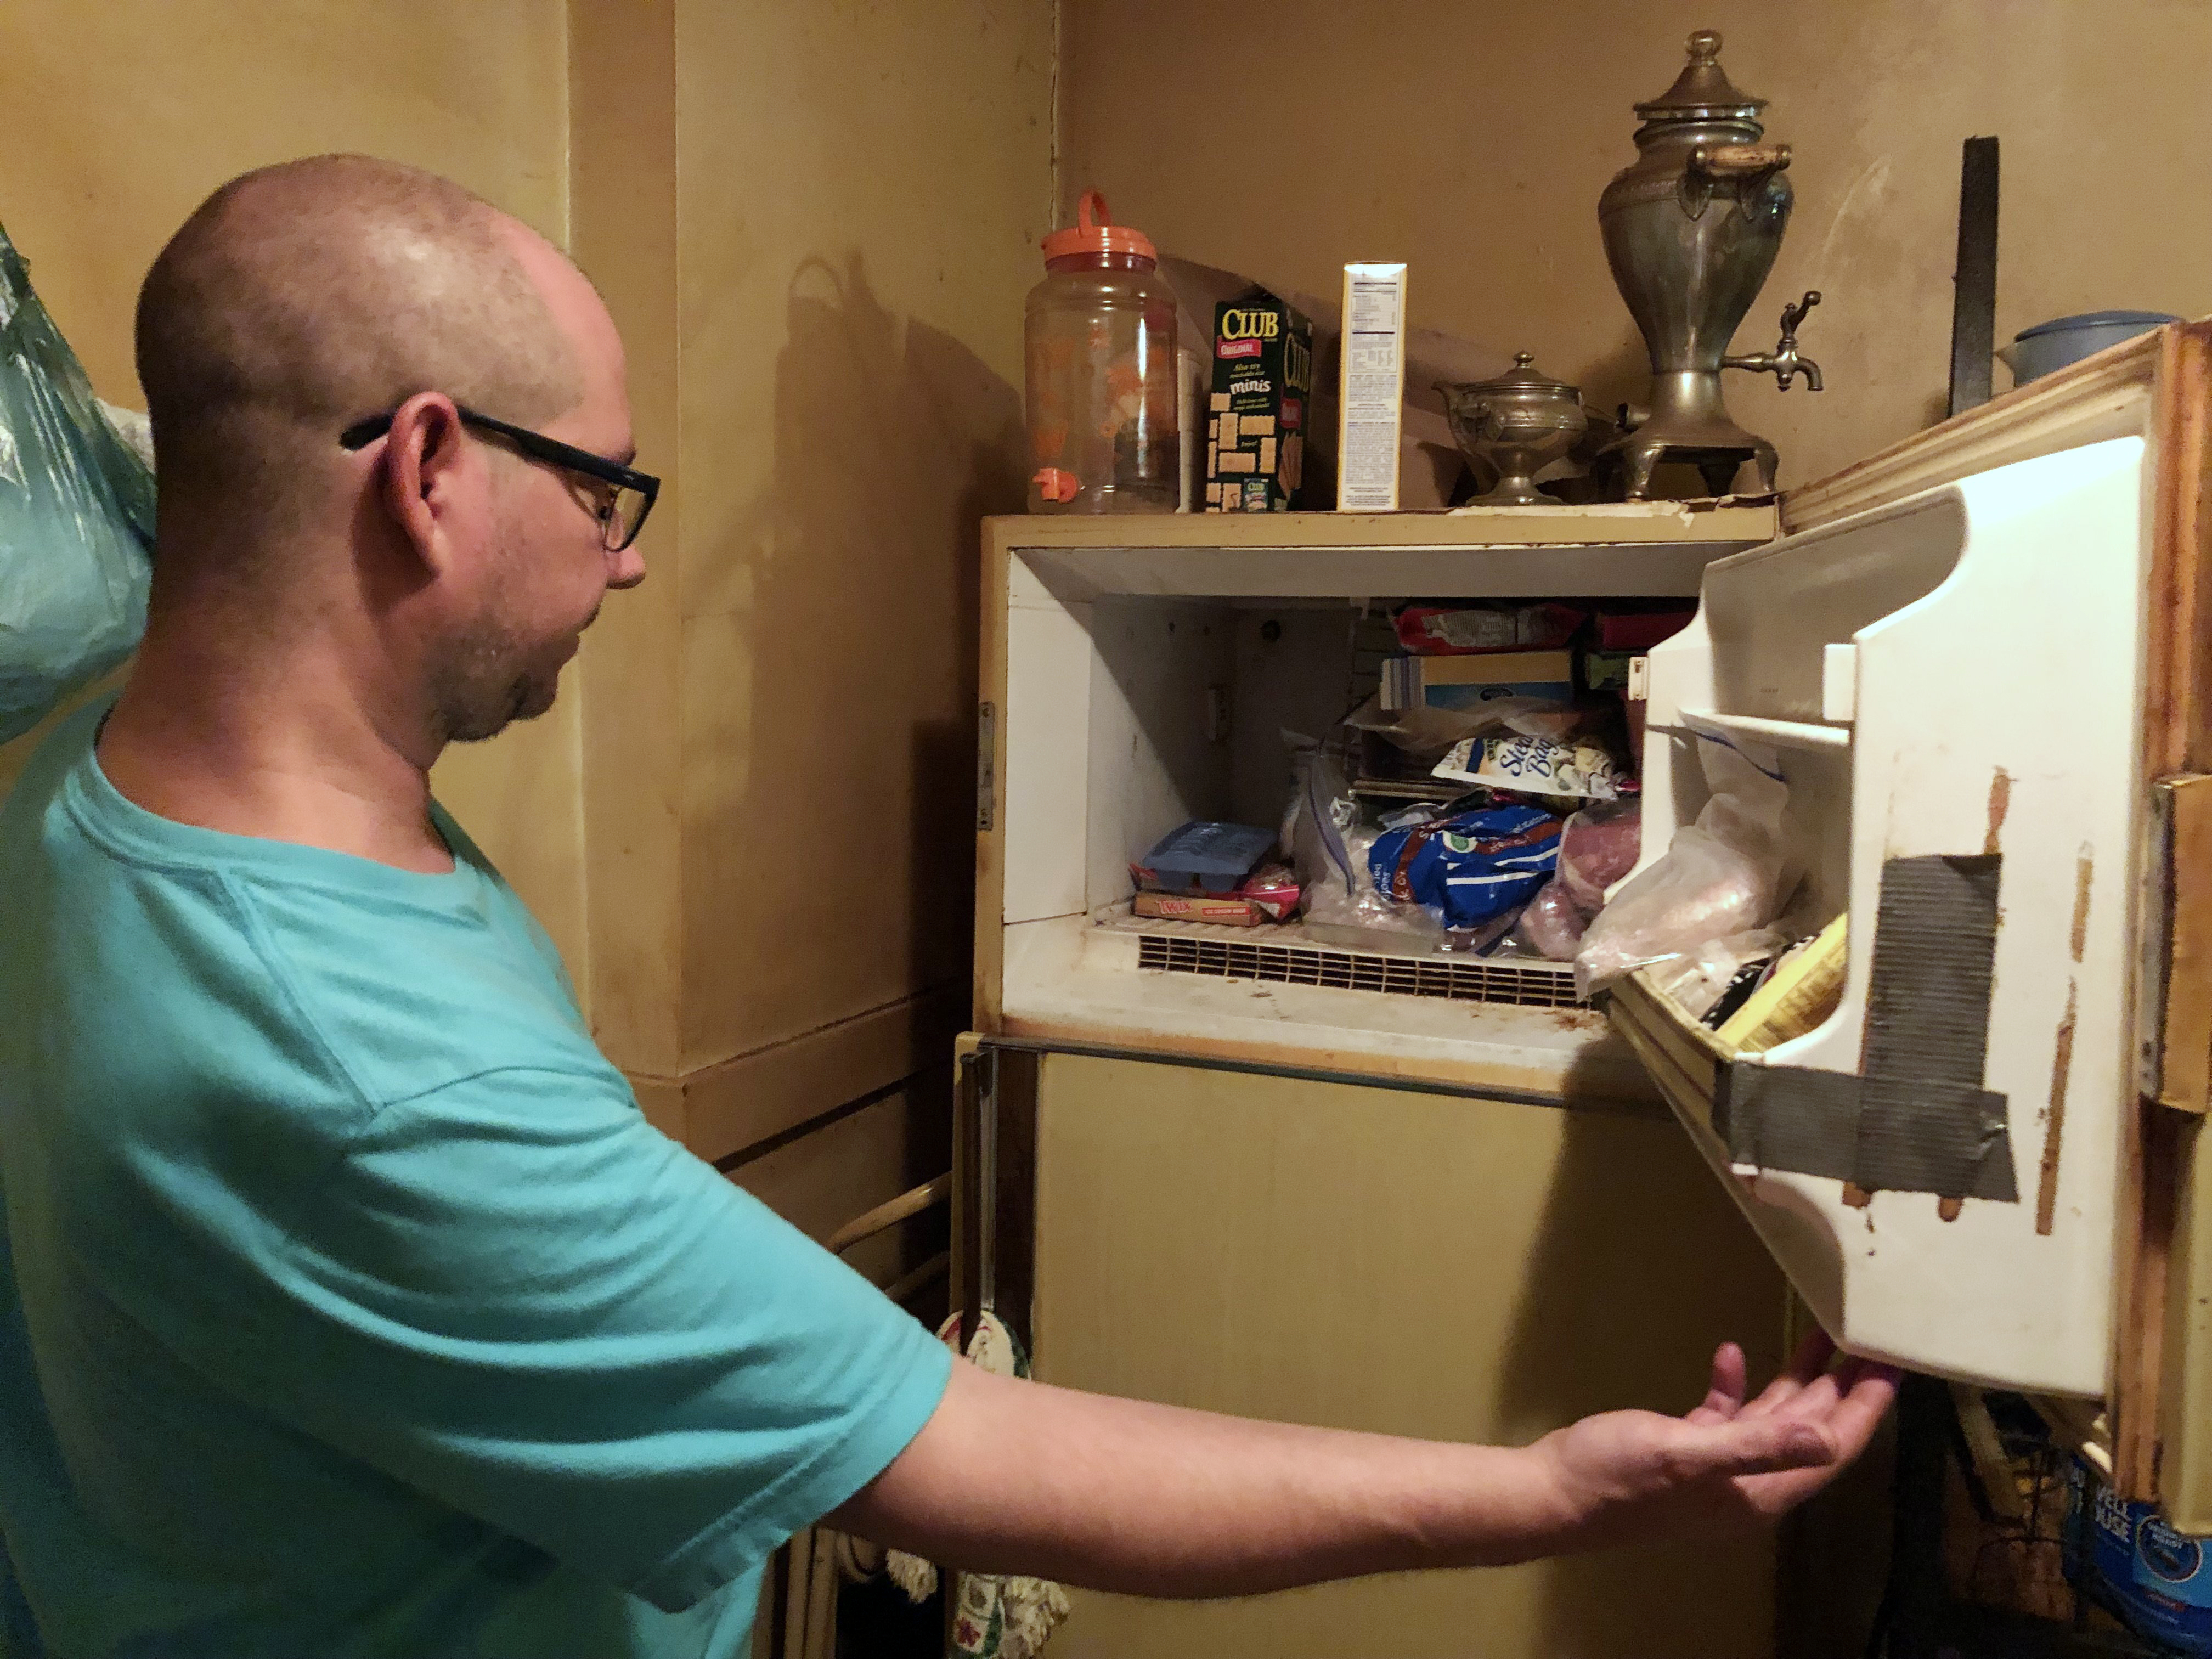 Police investigate after man says he found baby in freezer